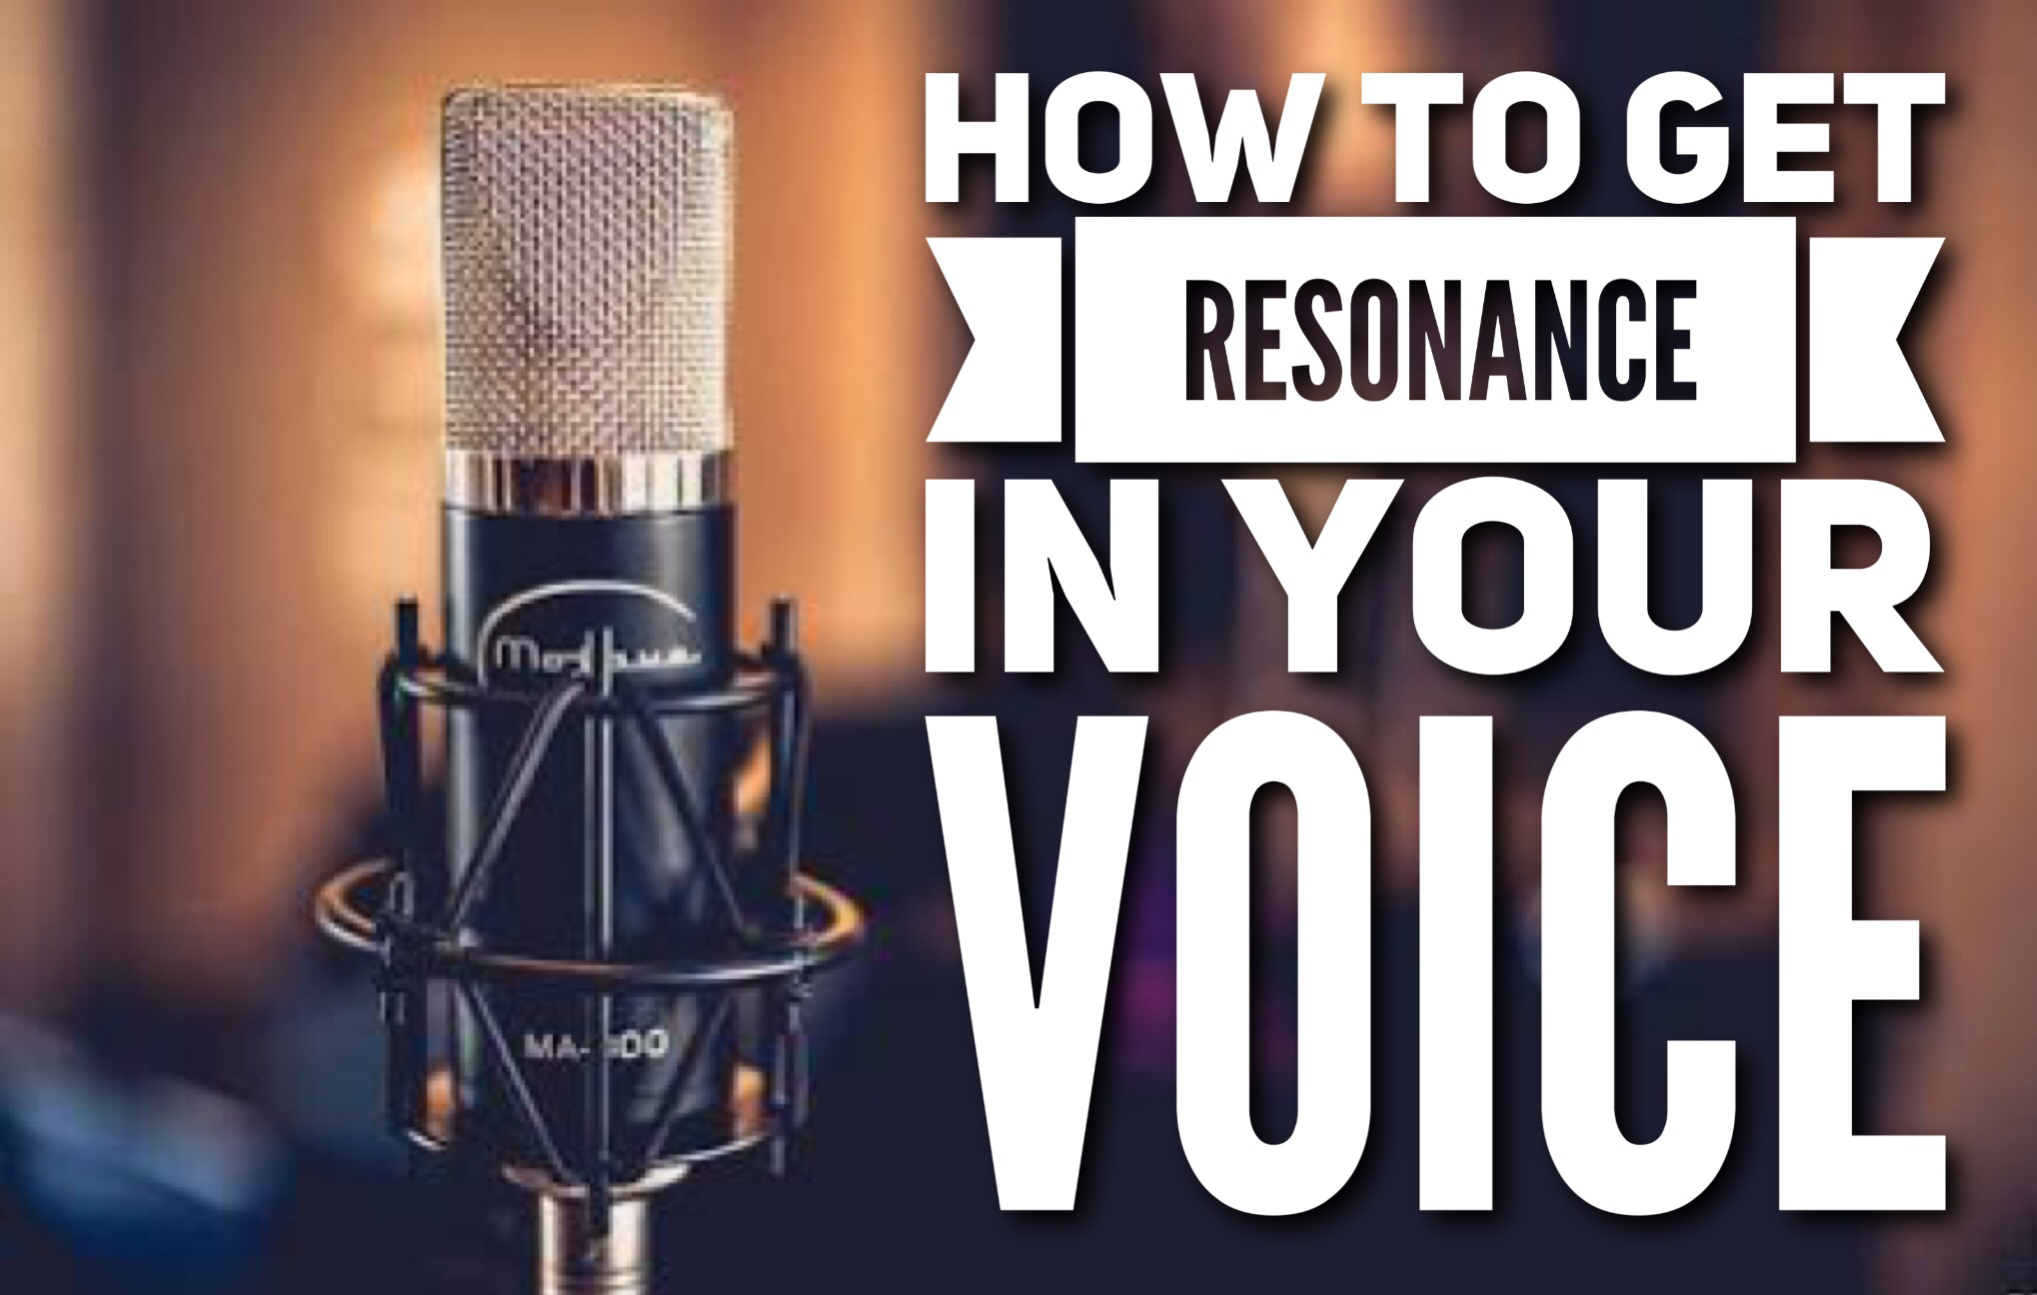 How to get resonance in your voice | Vocal warmups, Vocal ...